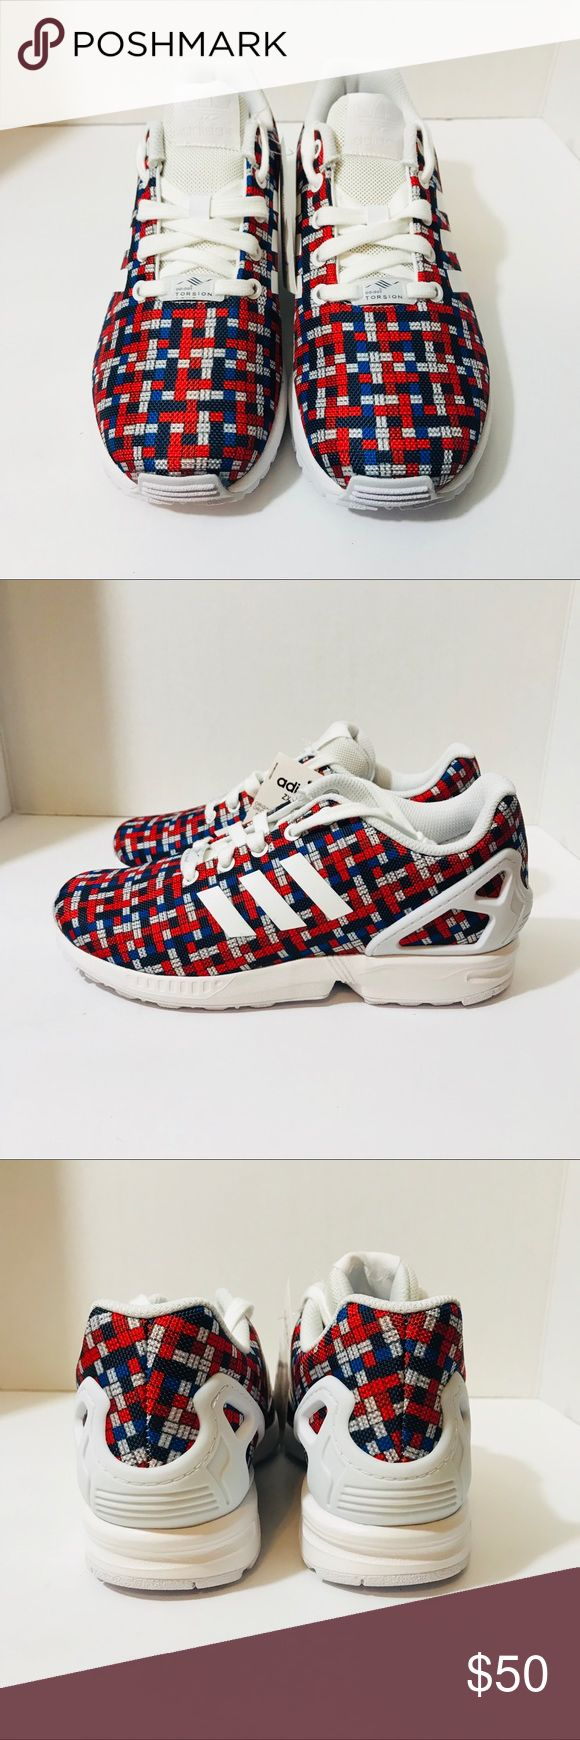 Adidas ZX Flux Kids Sneakers Adidas ZX Flux Red White & Blue Square Print Sneakers Size 5.5 Big Kids Grade School Sizing Brand New With Original Box adidas Shoes Sneakers